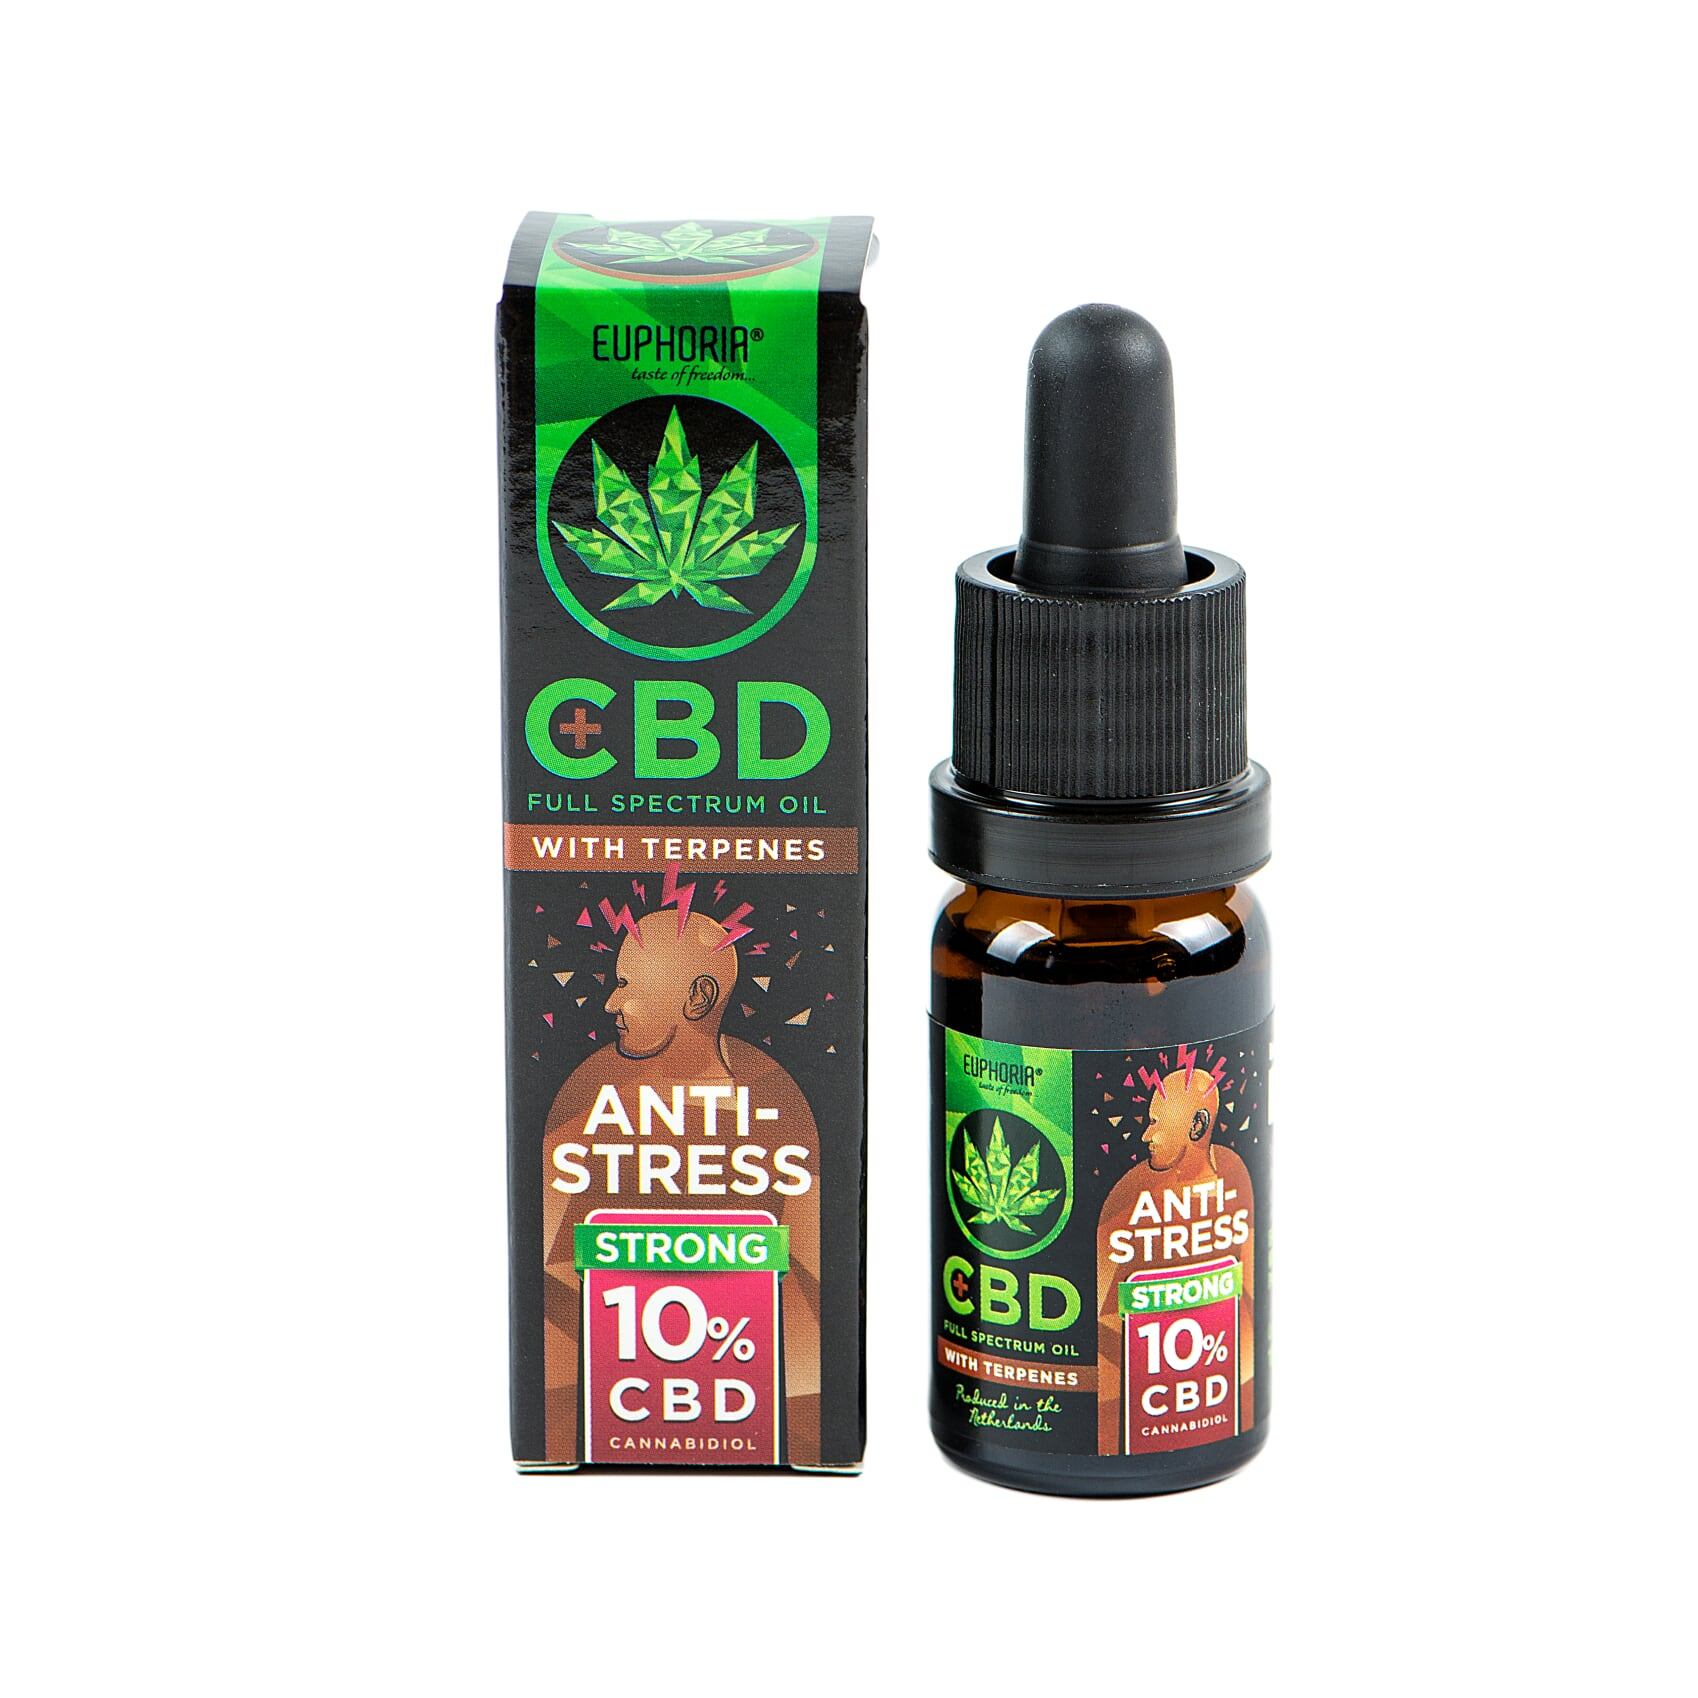 Euphoria CBD olej 10% s terpeny 10ml 1000mg ANTI-STRESS